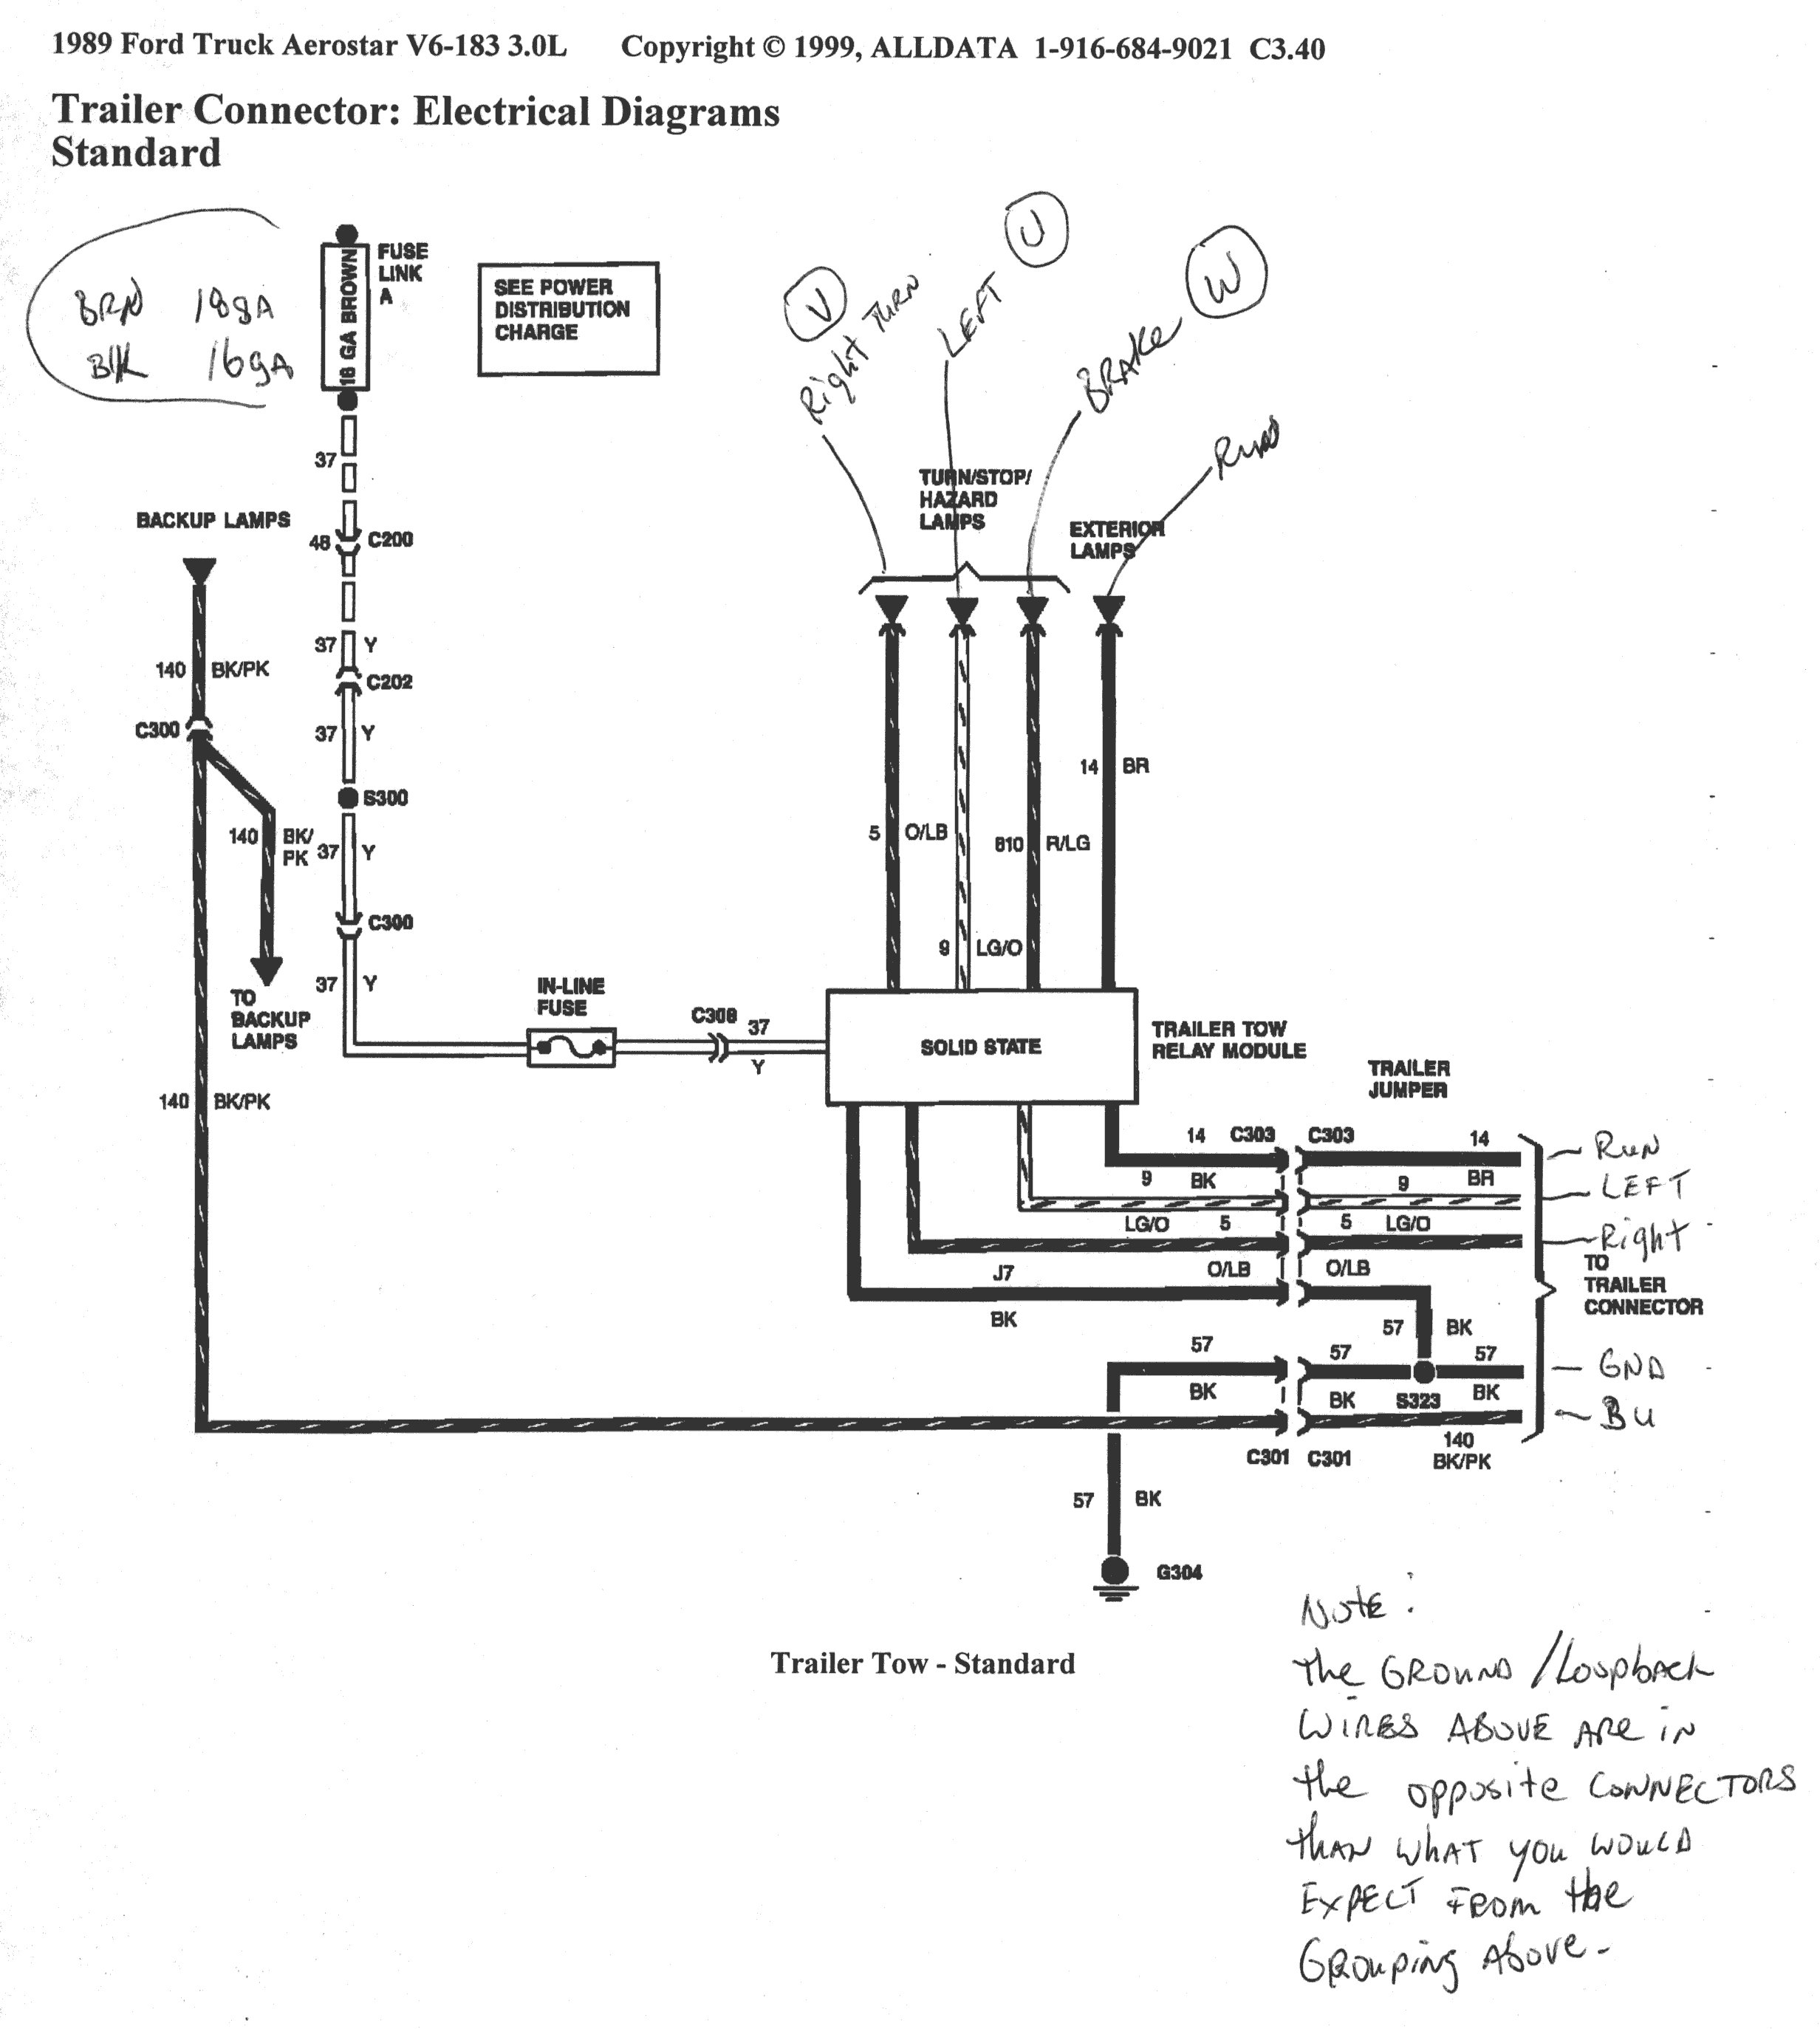 [DIAGRAM_3US]  Ford F250 Trailer Wiring 1999 ford f250 super duty wiring diagram trailer  wiring 1999 ford f250 super duty wiring diagram - pump.123vielgeld.de | 2008 Ford F 250 Light Wiring Diagram |  | Wires